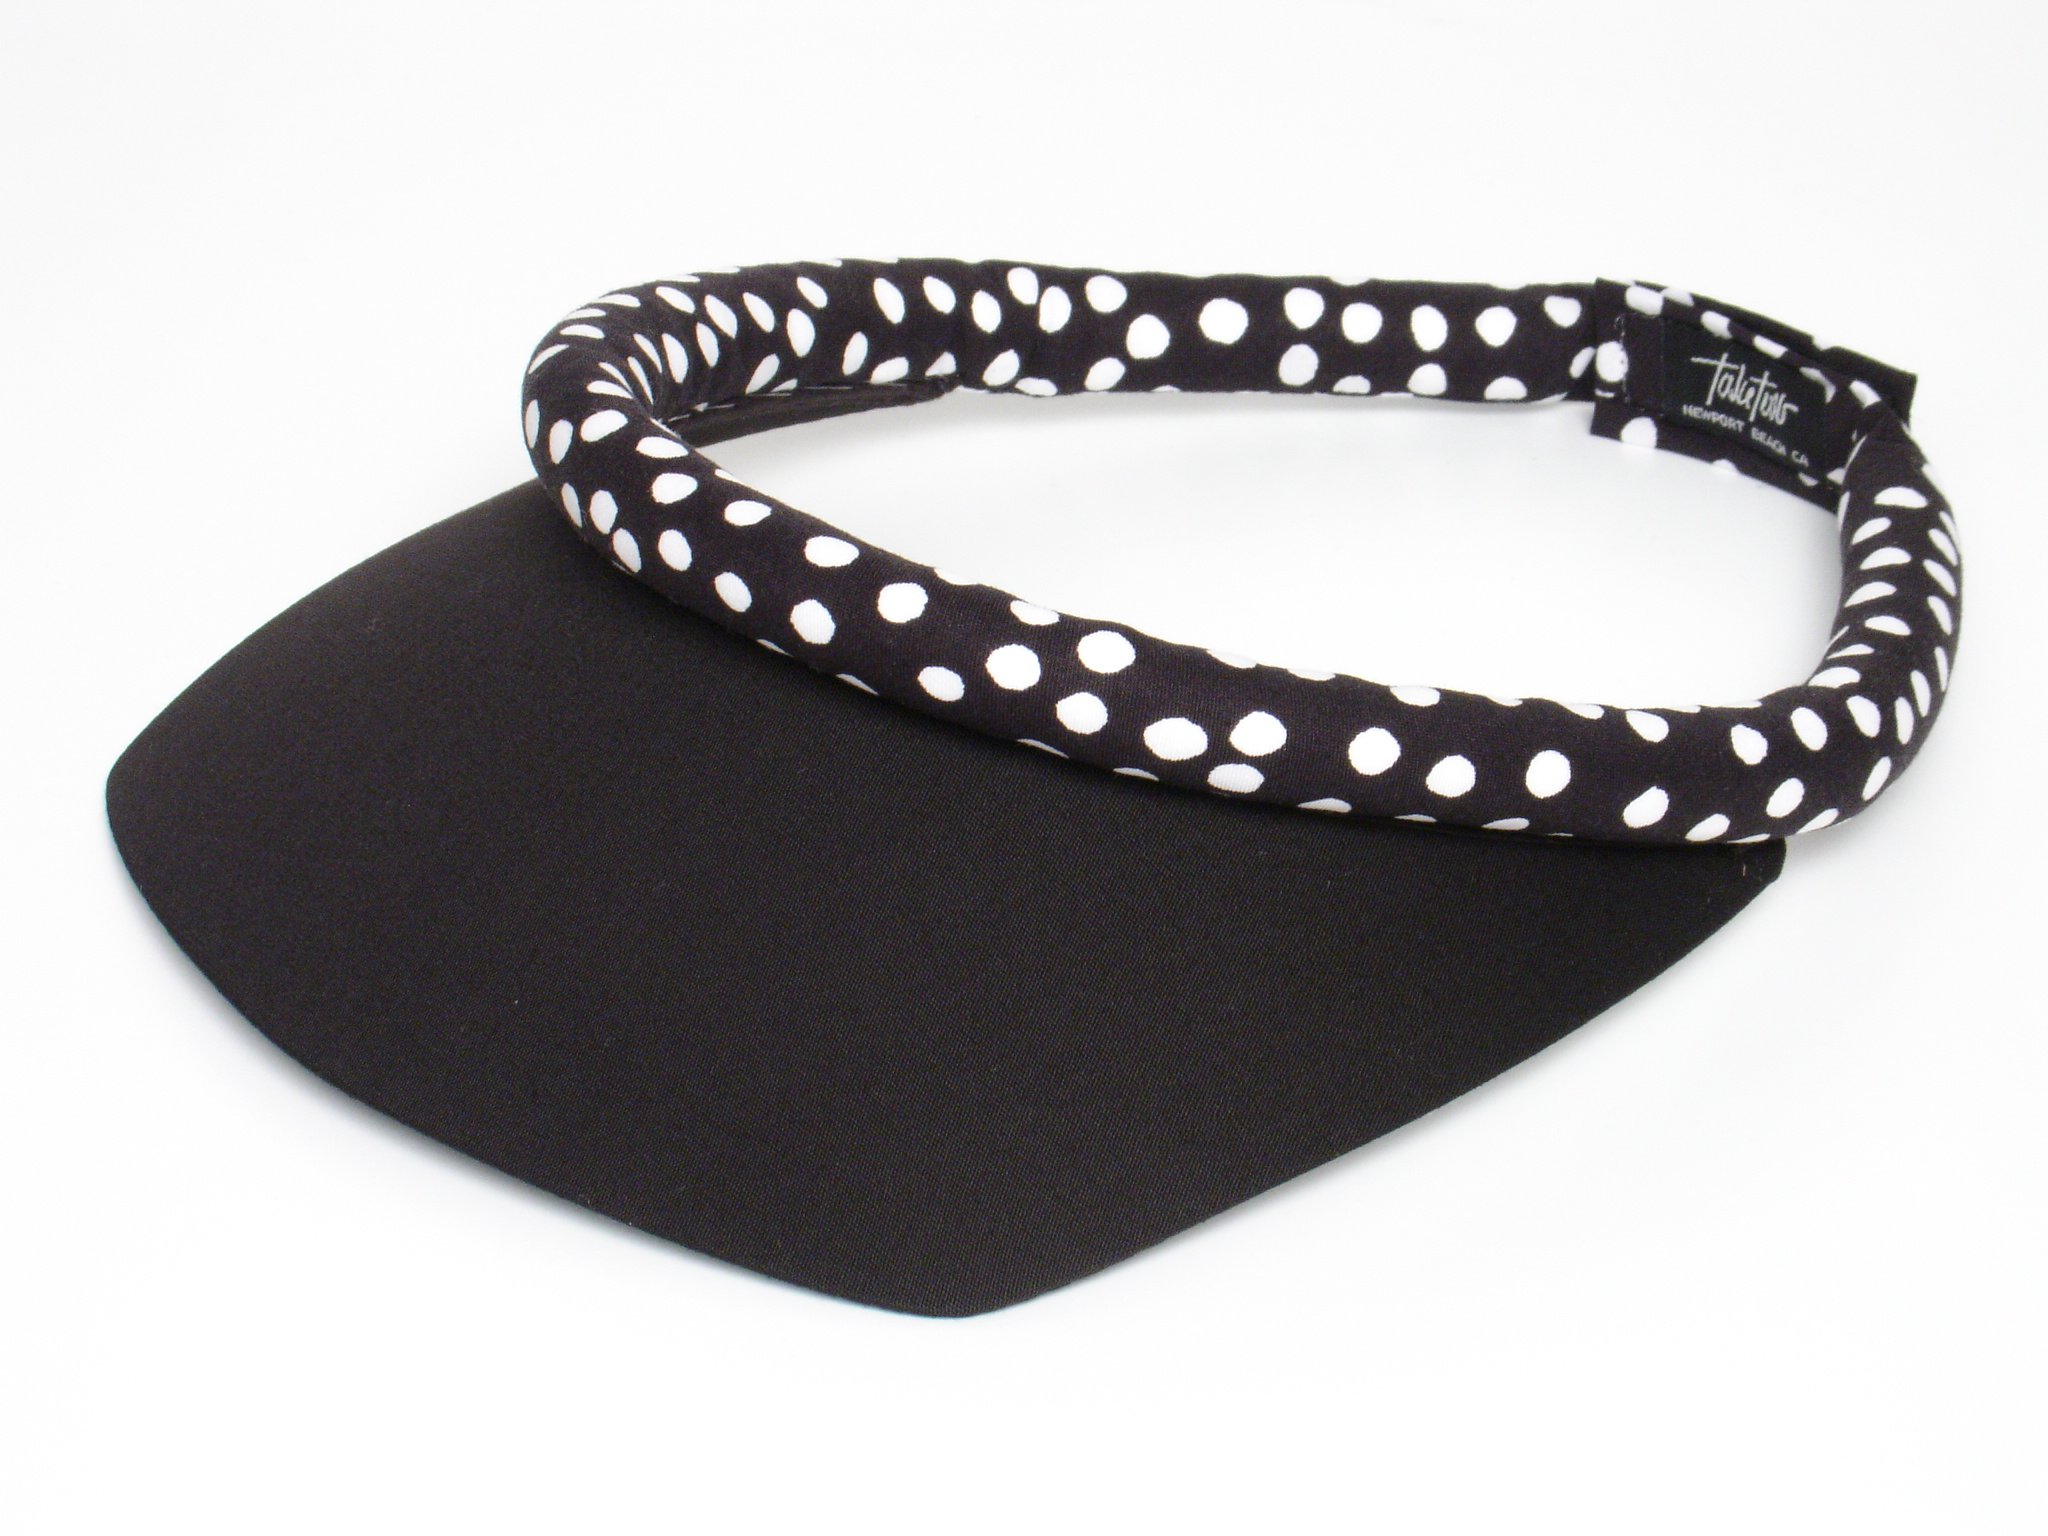 Take Two Women's Square Brim Visor One Size black/white dots